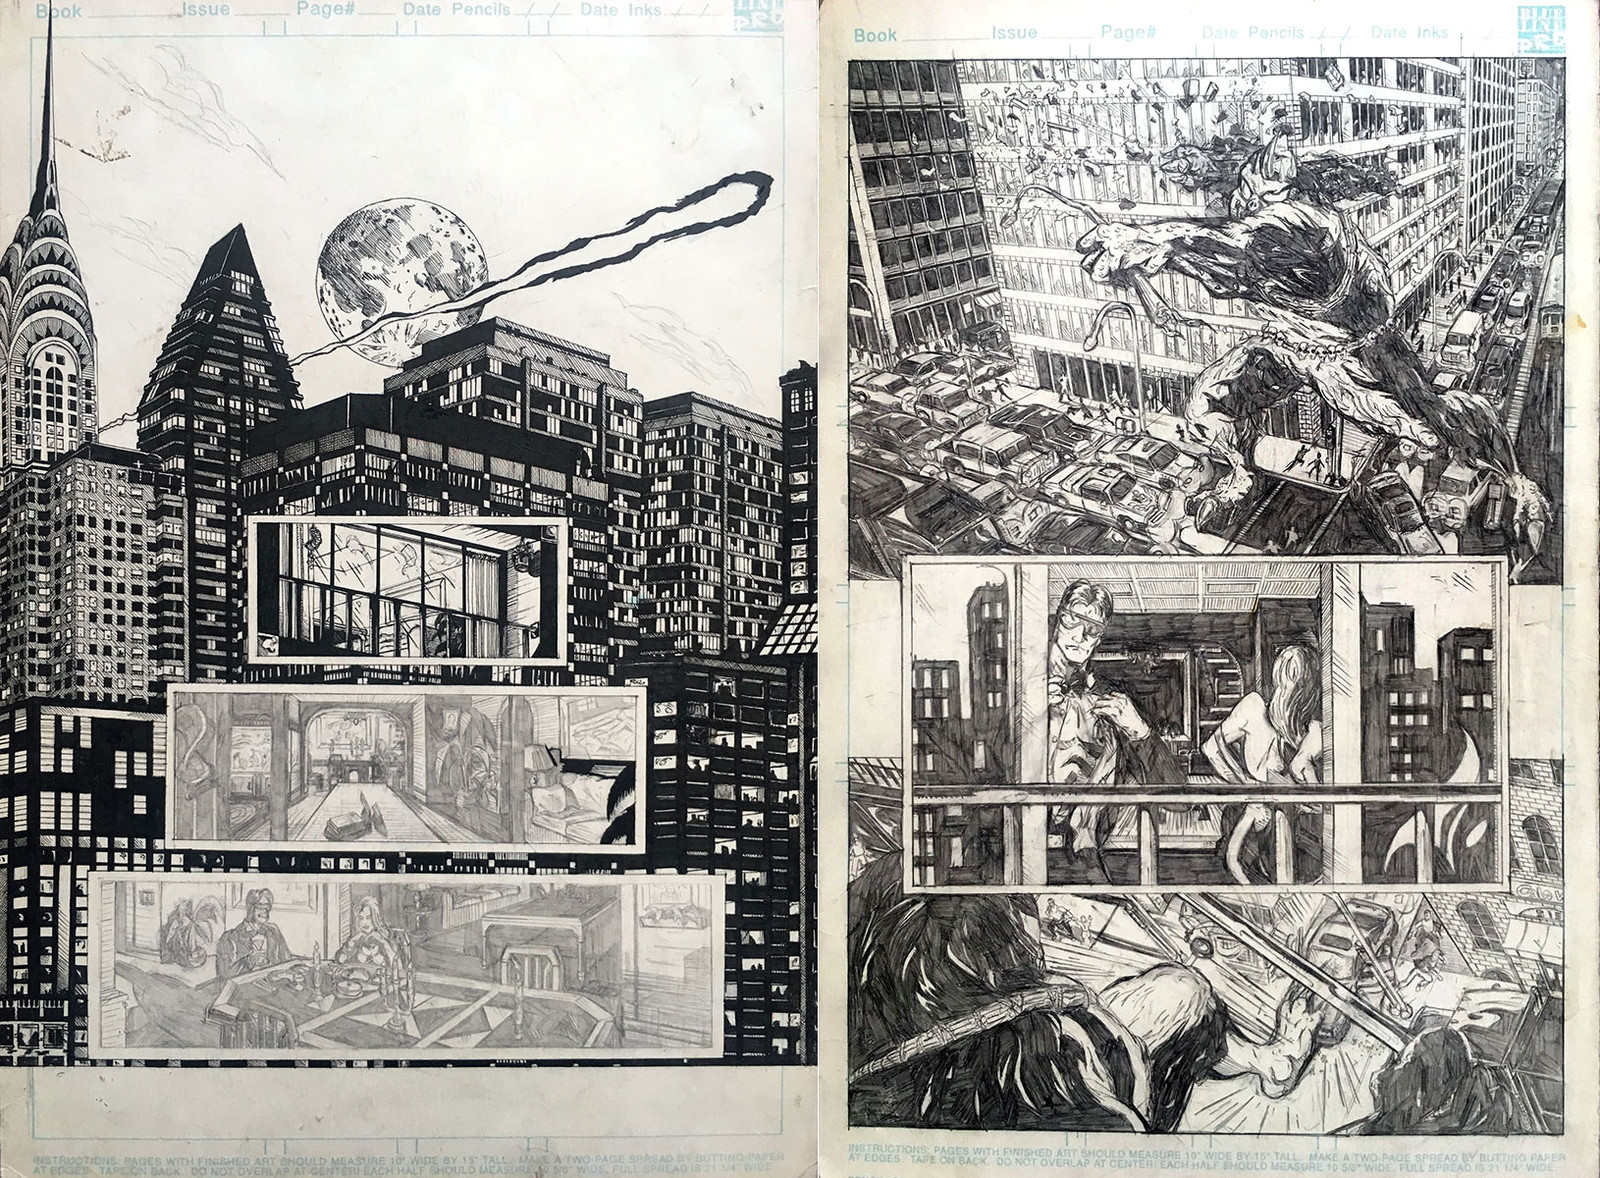 This is a 2-page spread done for Glass Door Graphics years ago. It was drawn to a sample X-Men script. I had started to ink page 1 for my own gratification but never finished. This was right before I switched to tech pens to do cityscape illustrations.